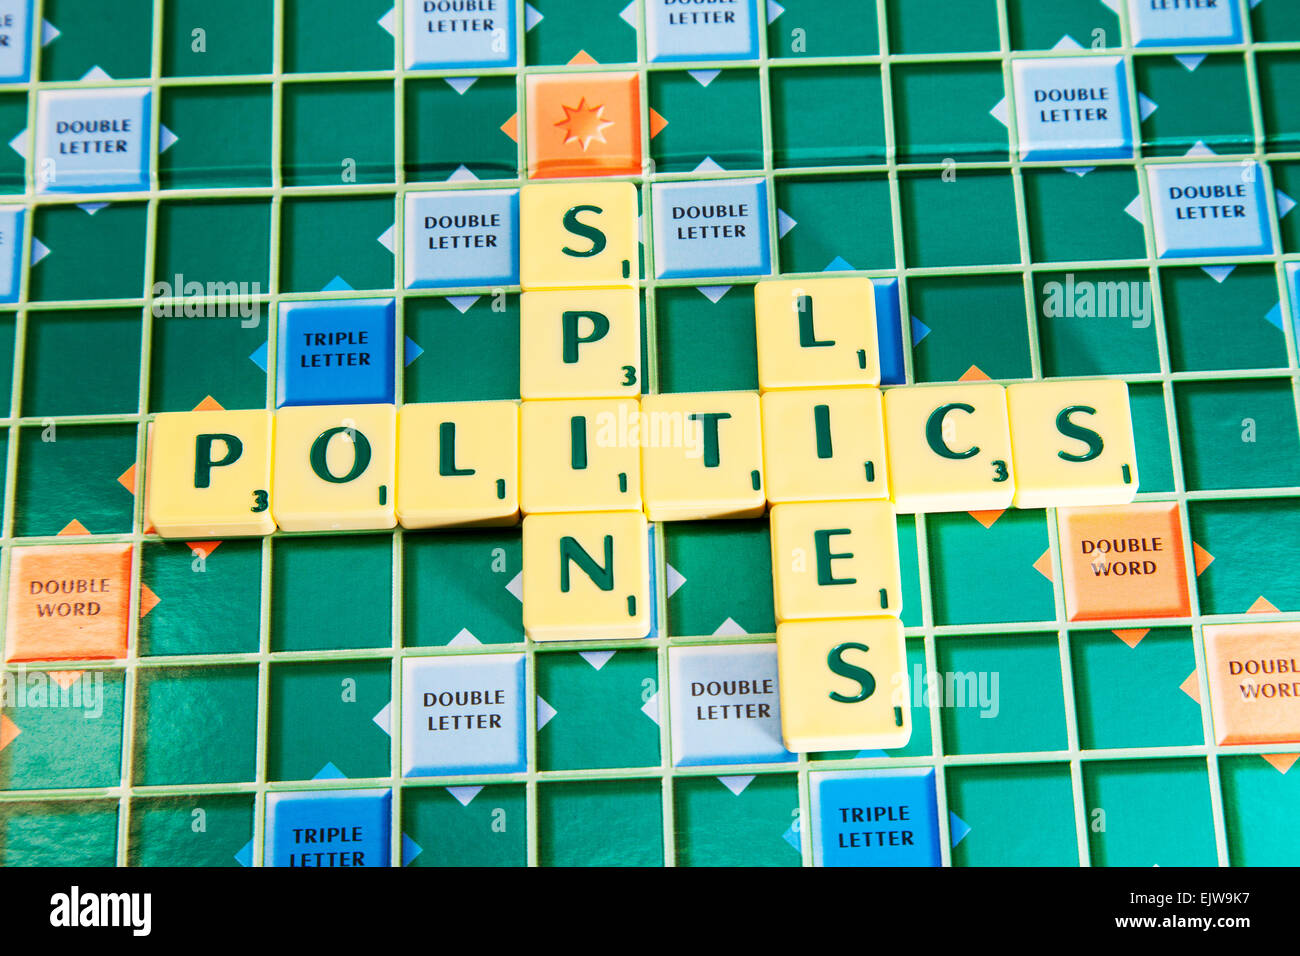 politics lies spin election government politicians political manifesto manifestos words using scrabble tiles to - Stock Image